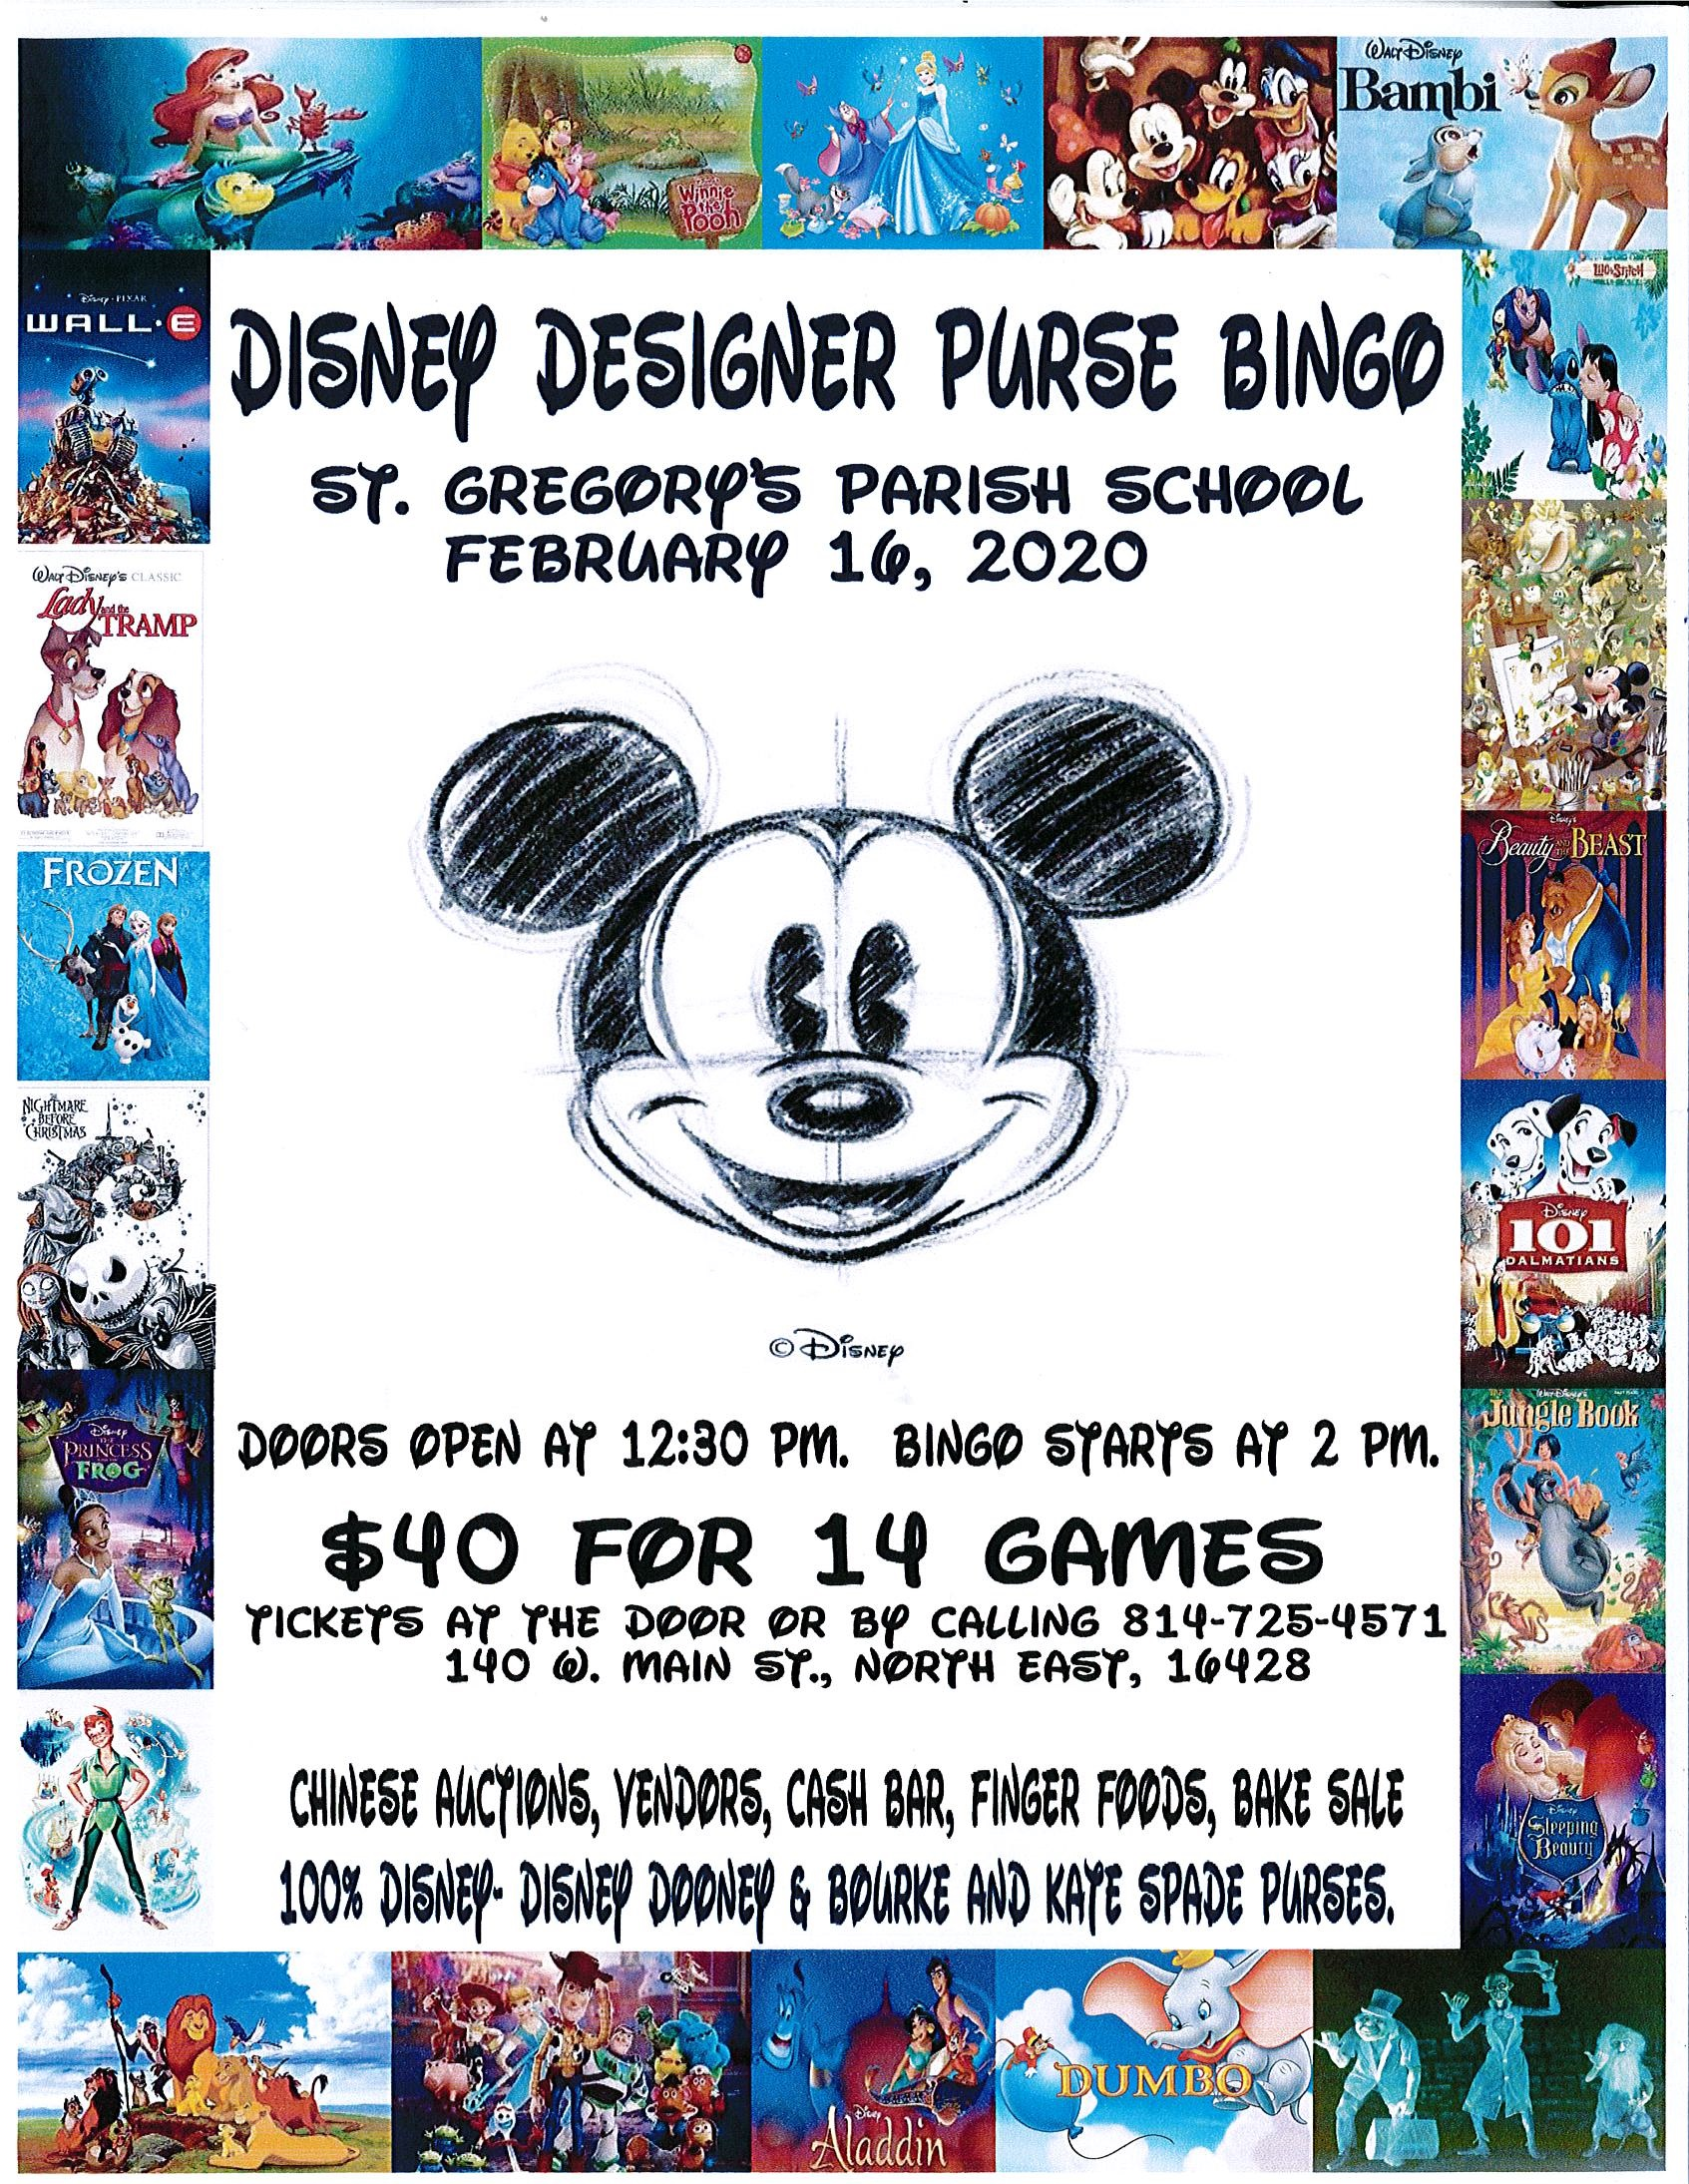 202 Disney Designer Purse Bingo